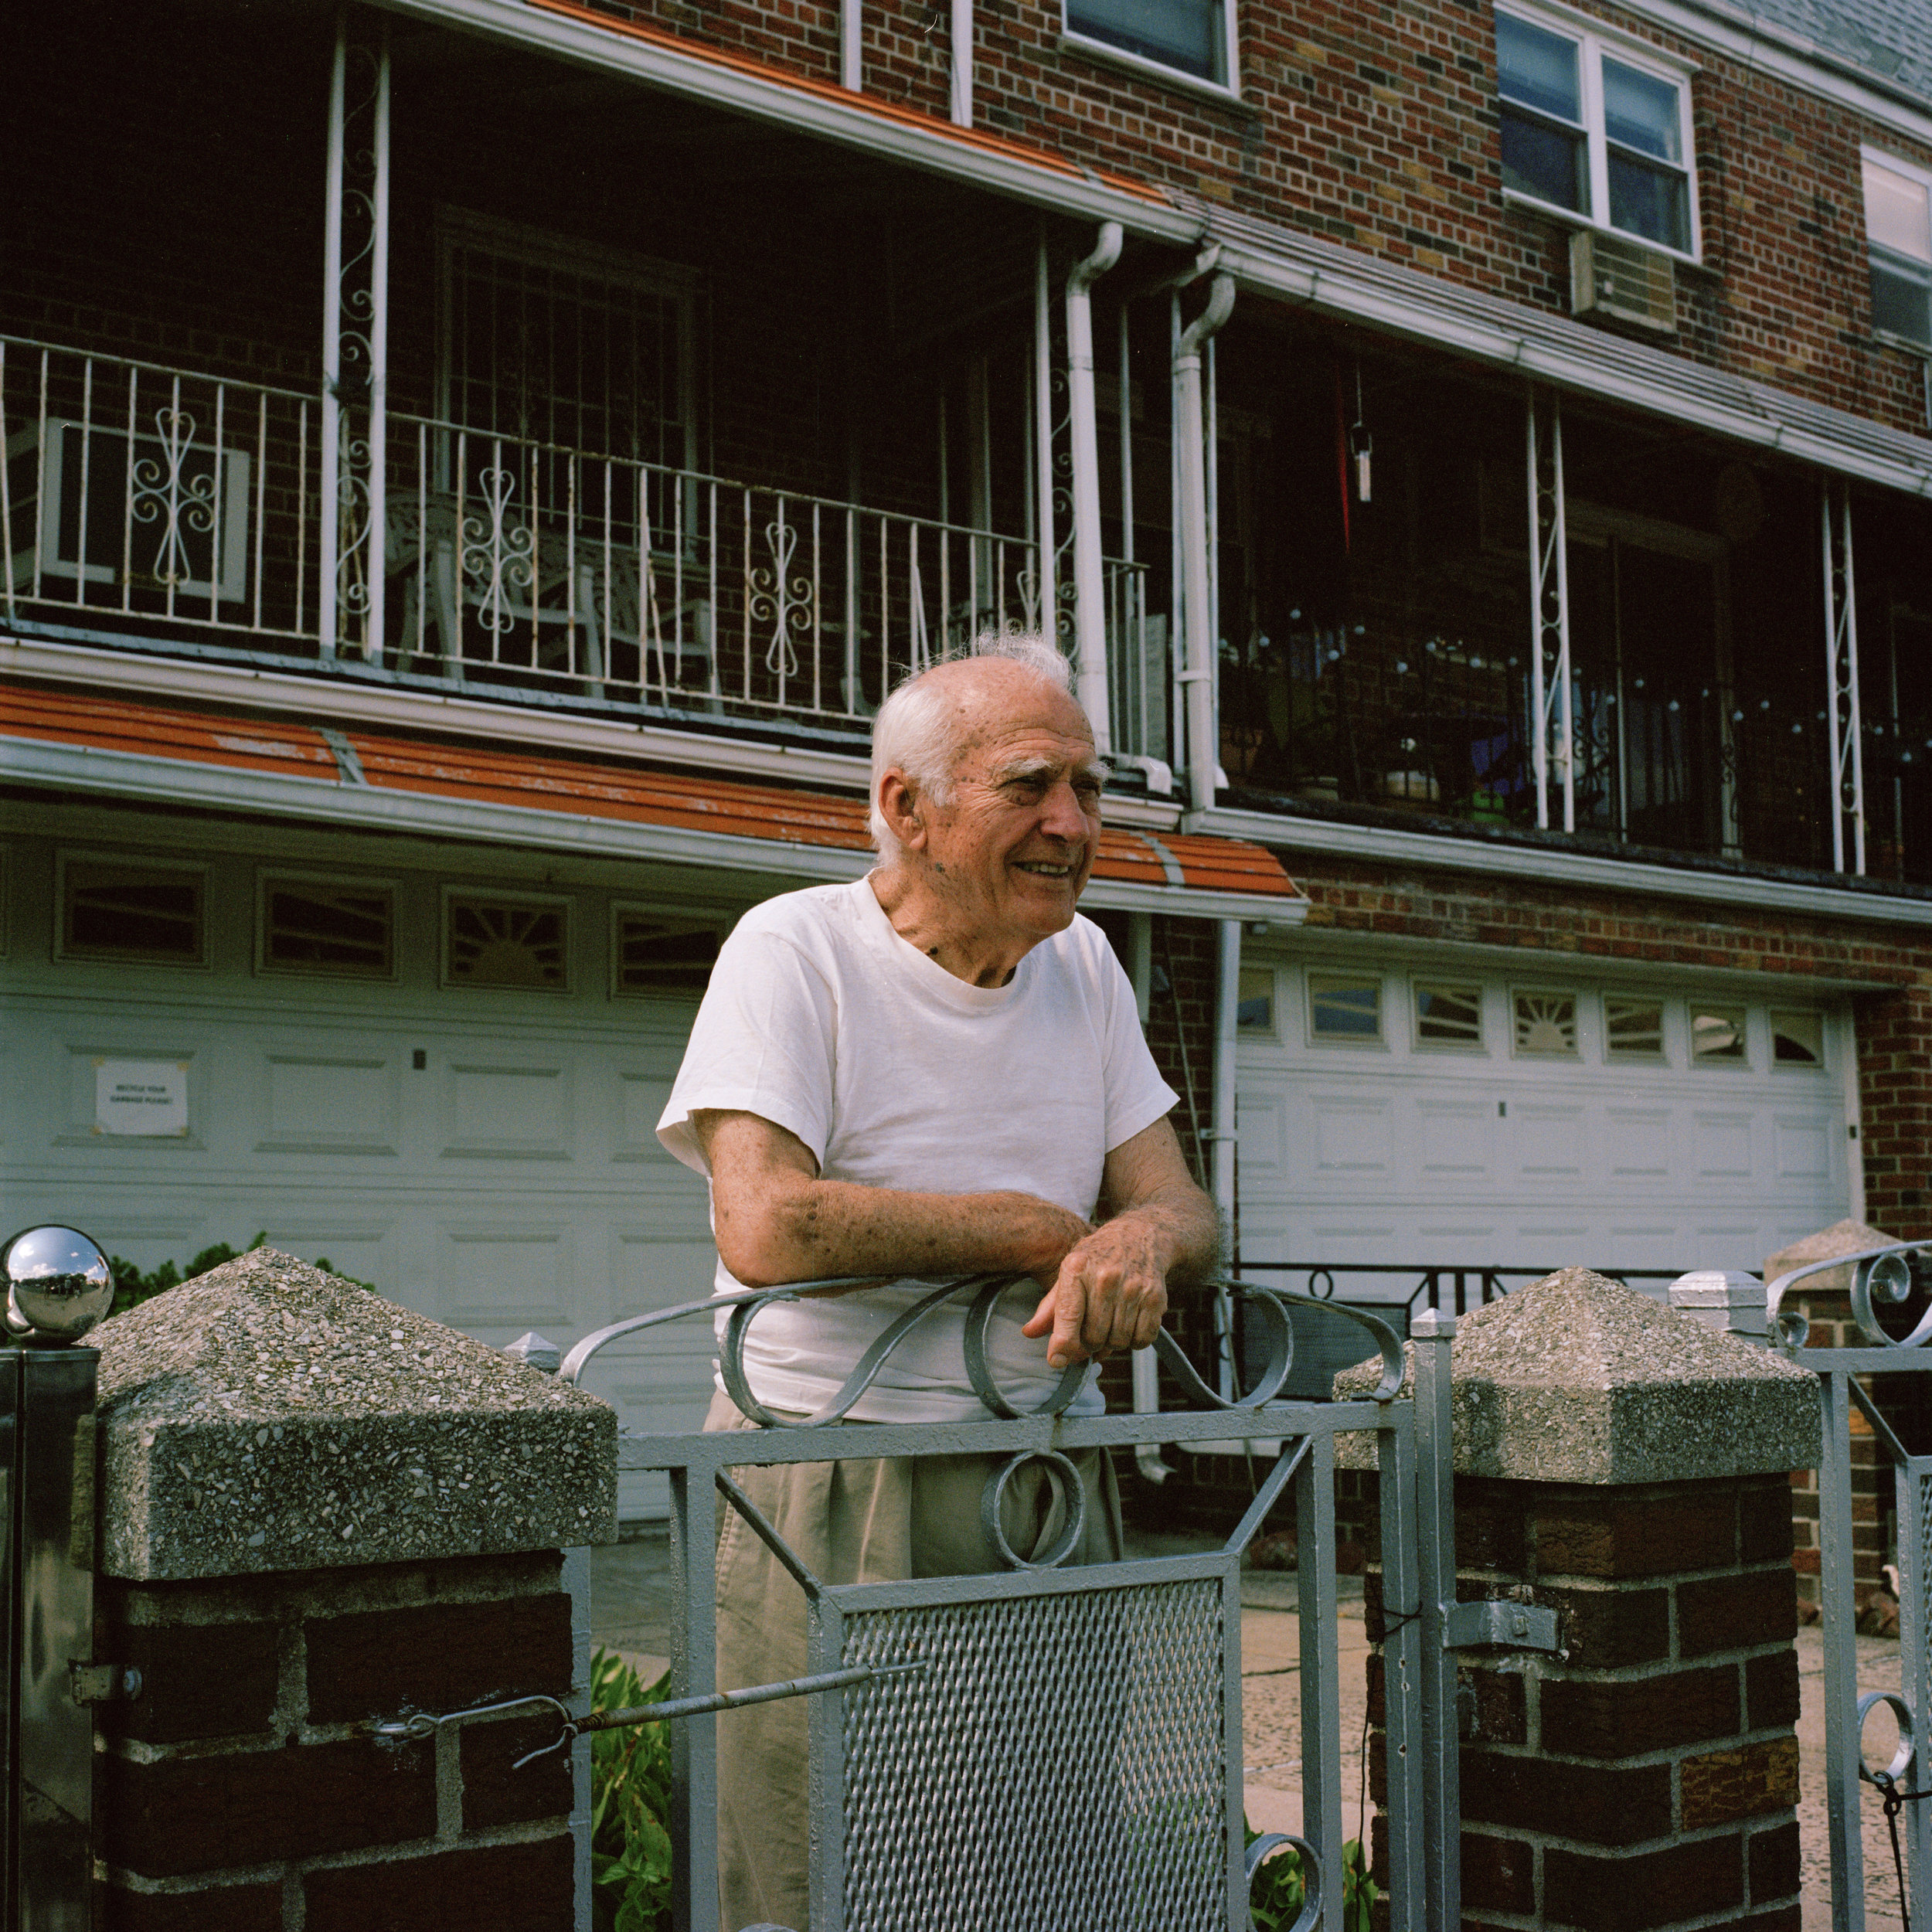 A man standing in front of his house